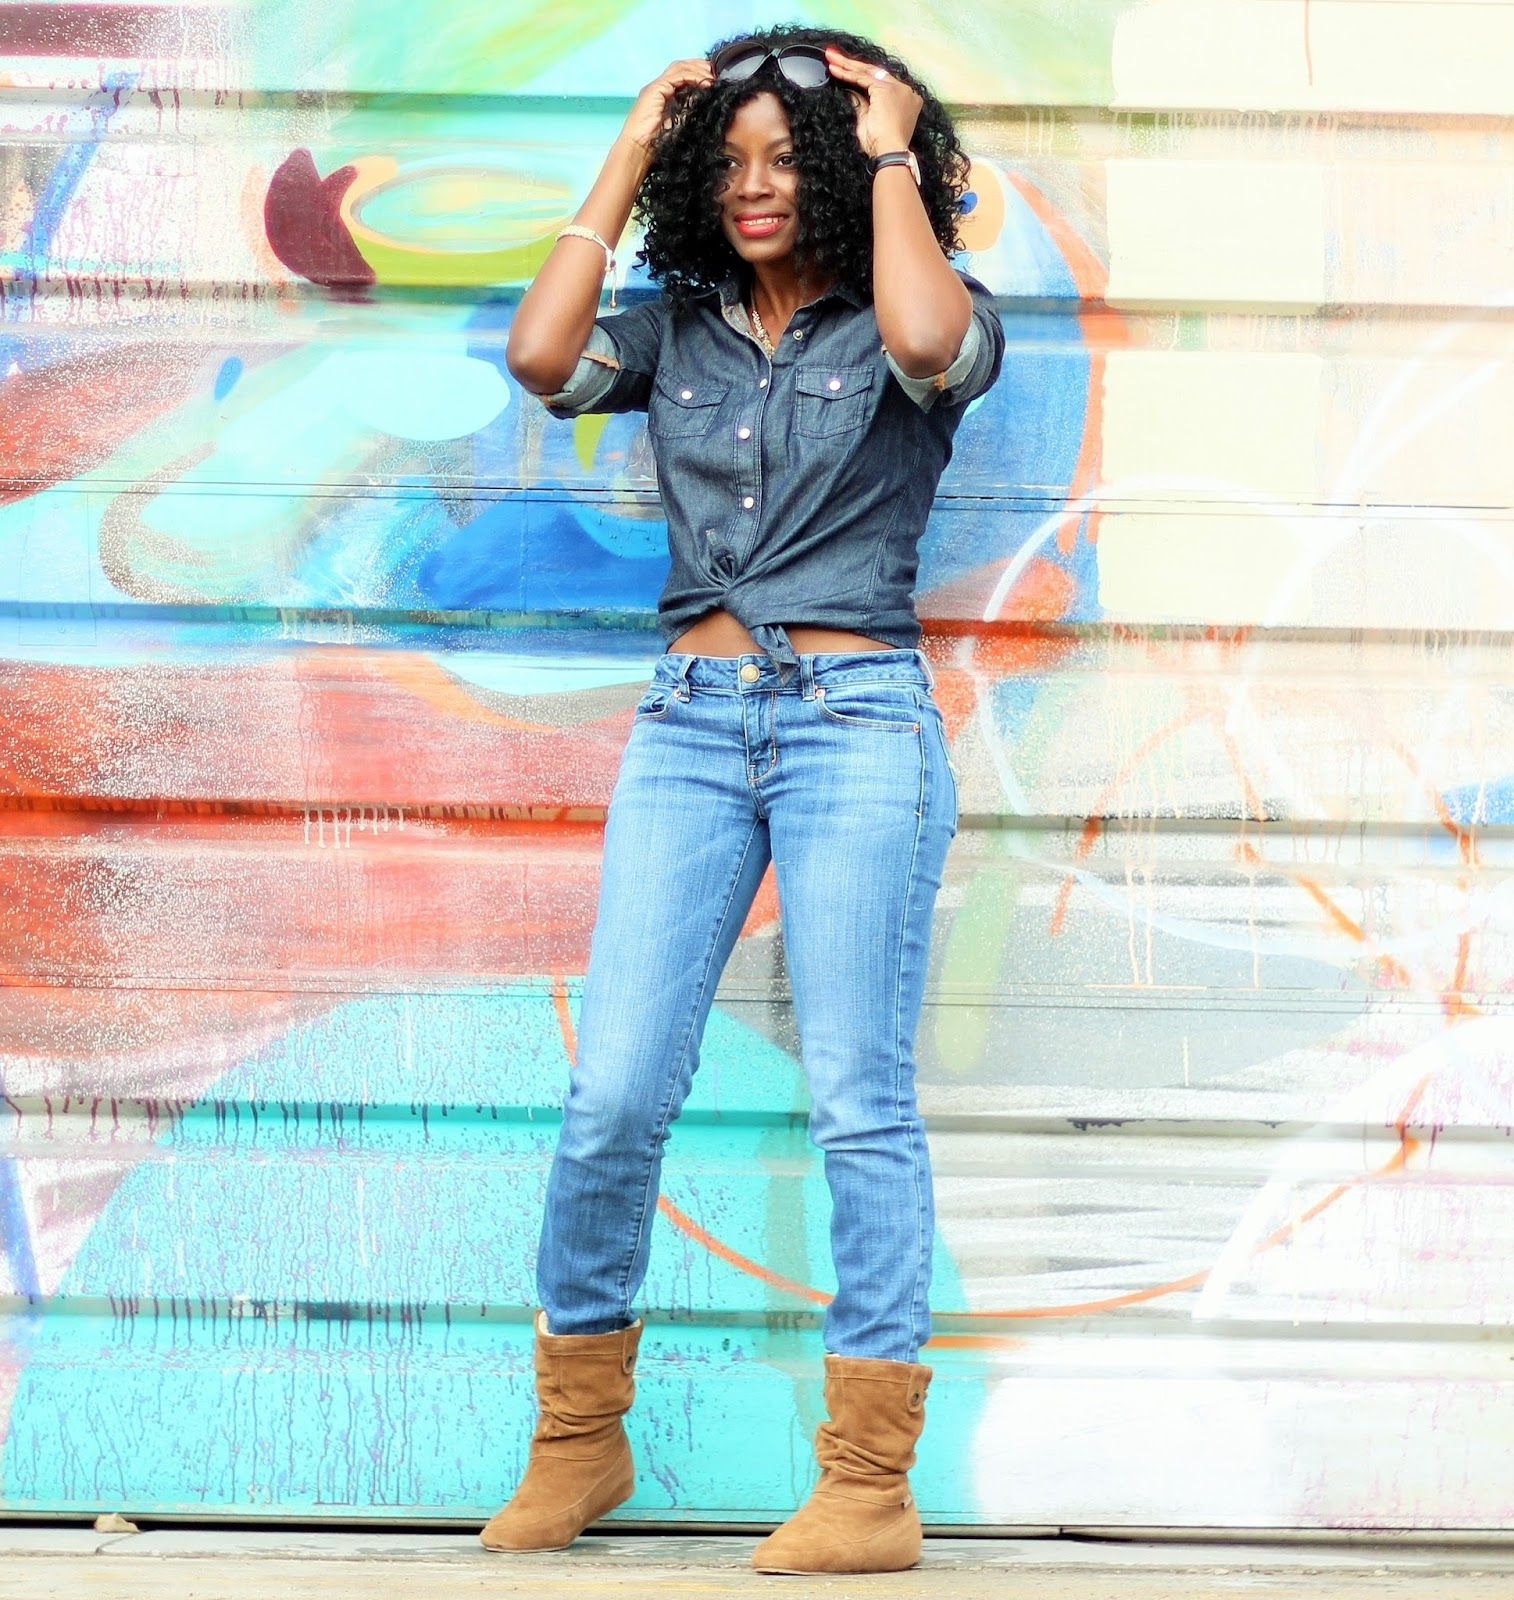 DENIM ON DENIM x TRAVEL BOOTS